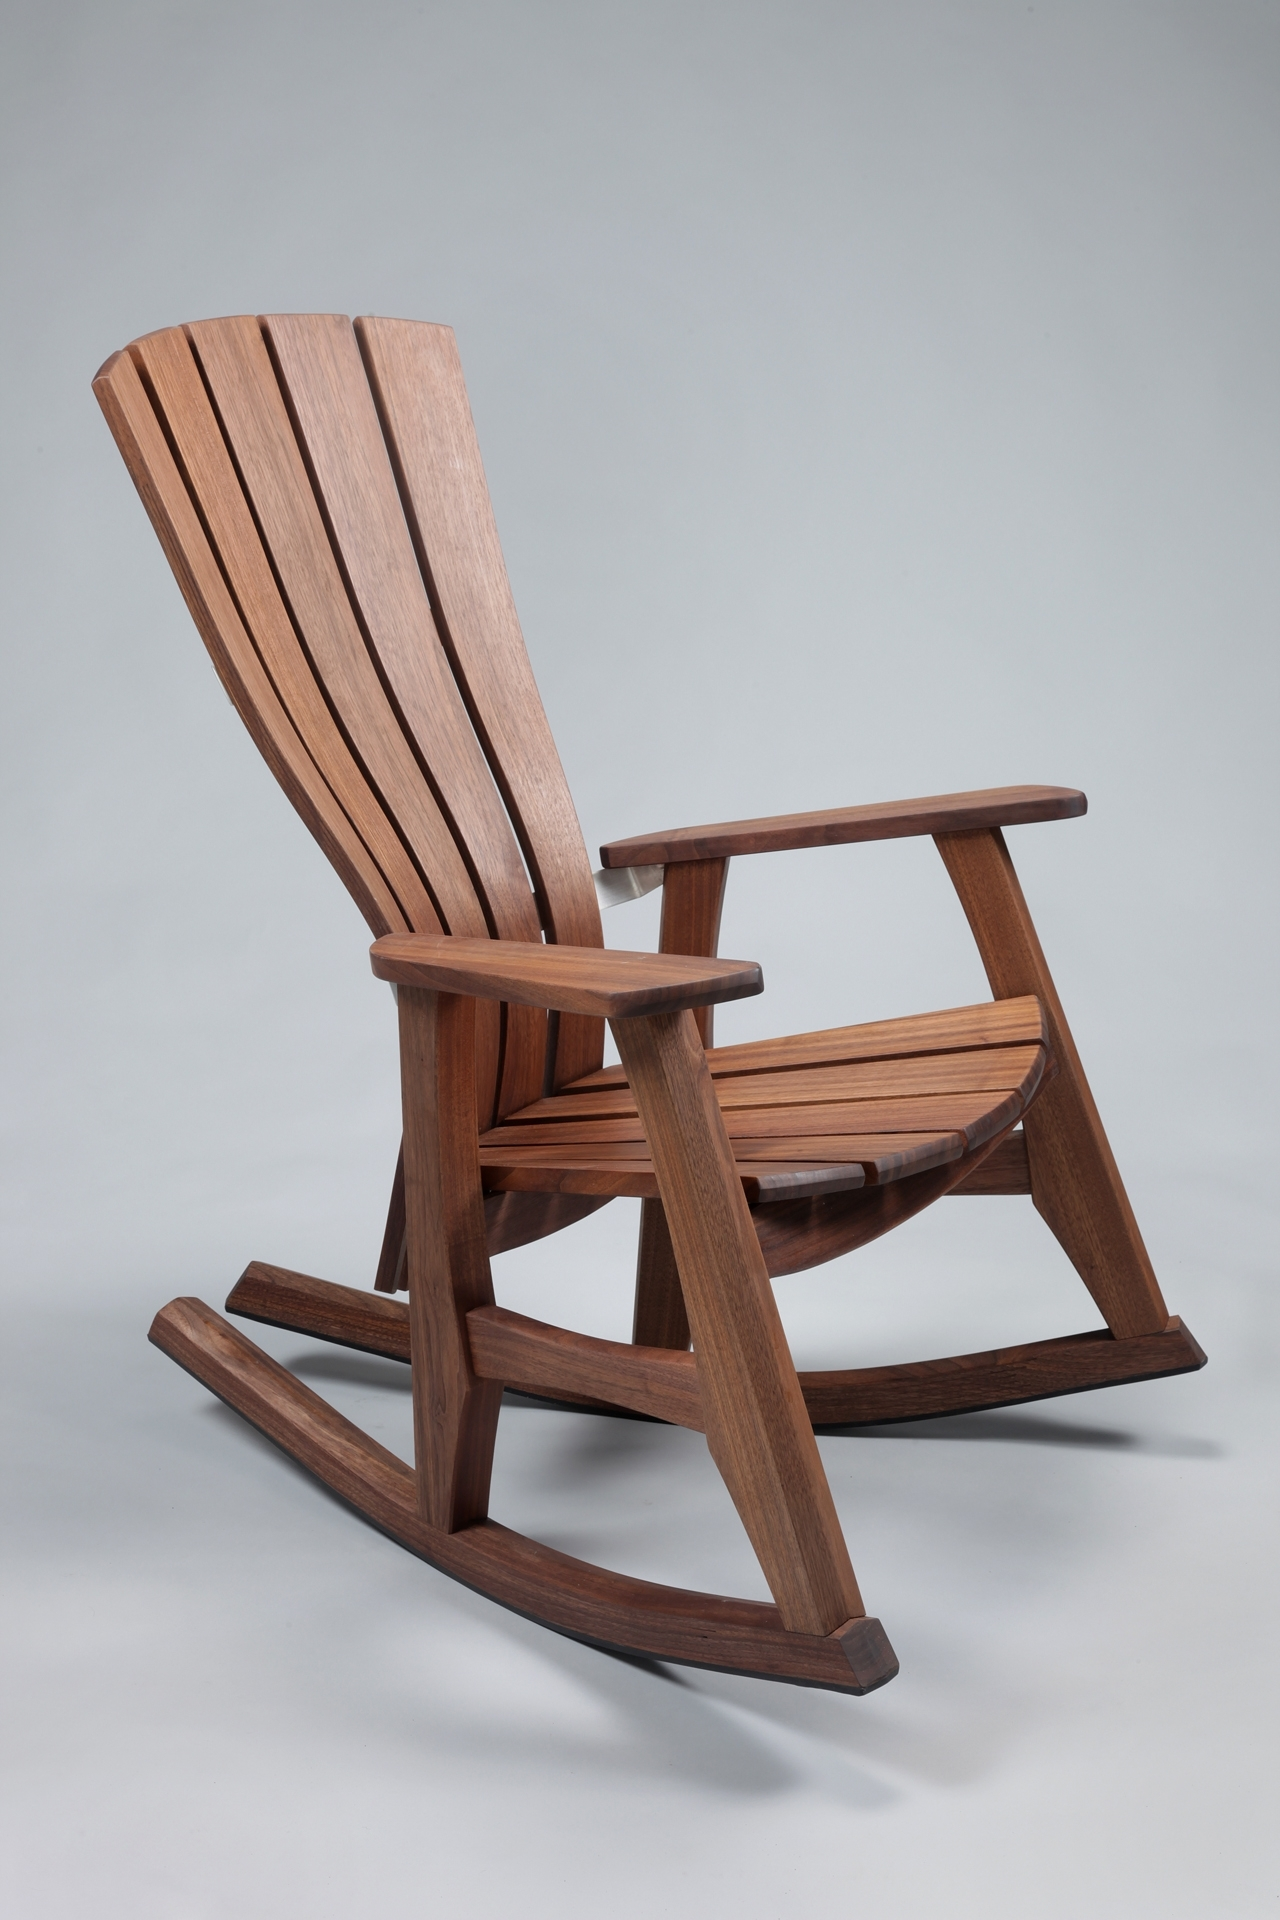 Best And Newest Unique Outdoor Rocking Chairs With Regard To Sunniva Rocking Chair Furniture Ideas Chairs Wooden Outdoor (View 3 of 15)